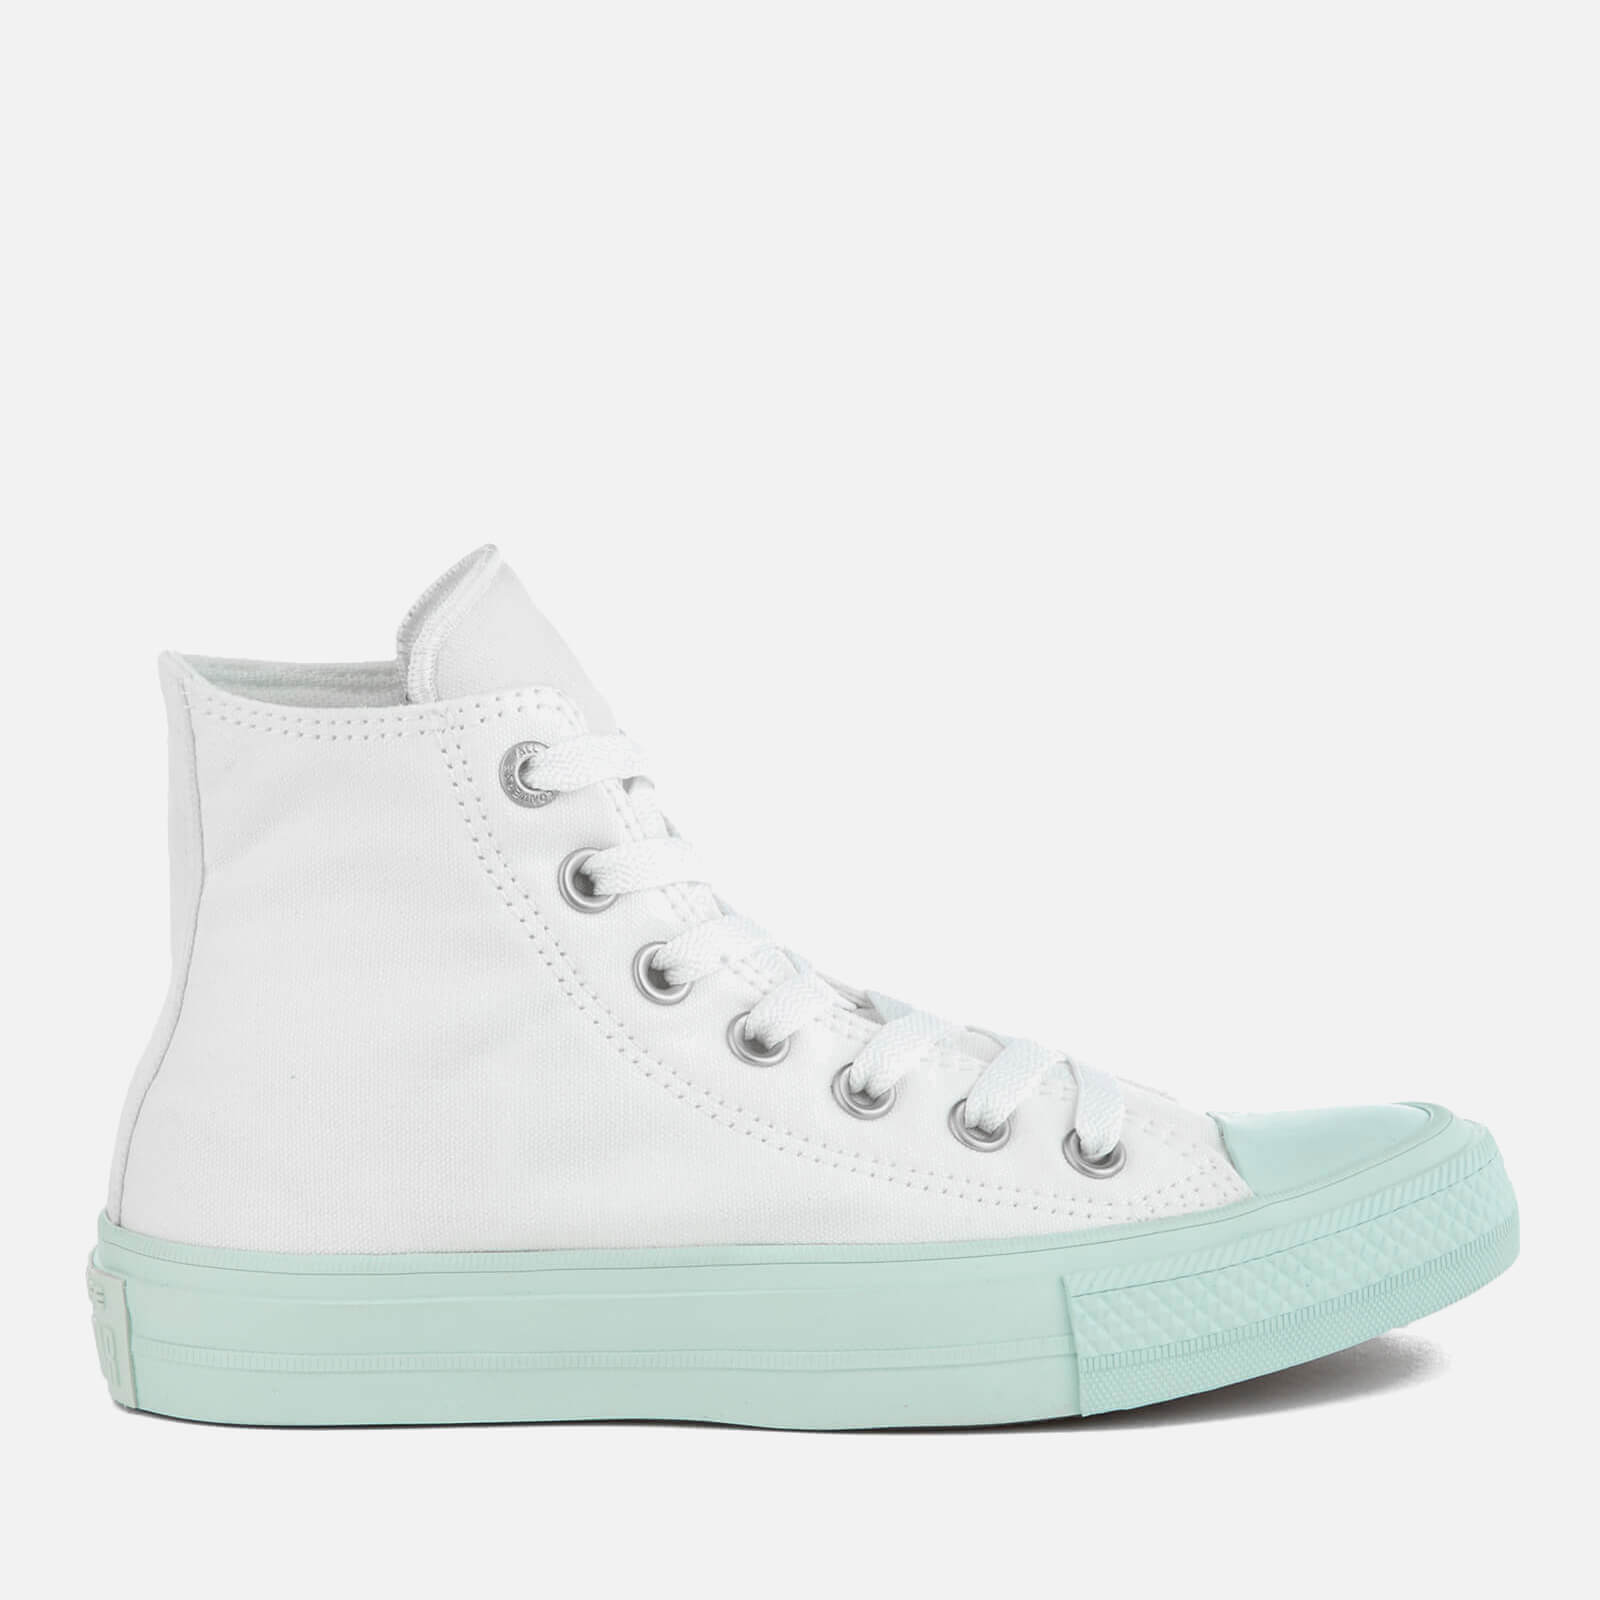 a2793df5423d02 Converse Women s Chuck Taylor All Star II Hi-Top Trainers - White Fiberglass  - Free UK Delivery over £50